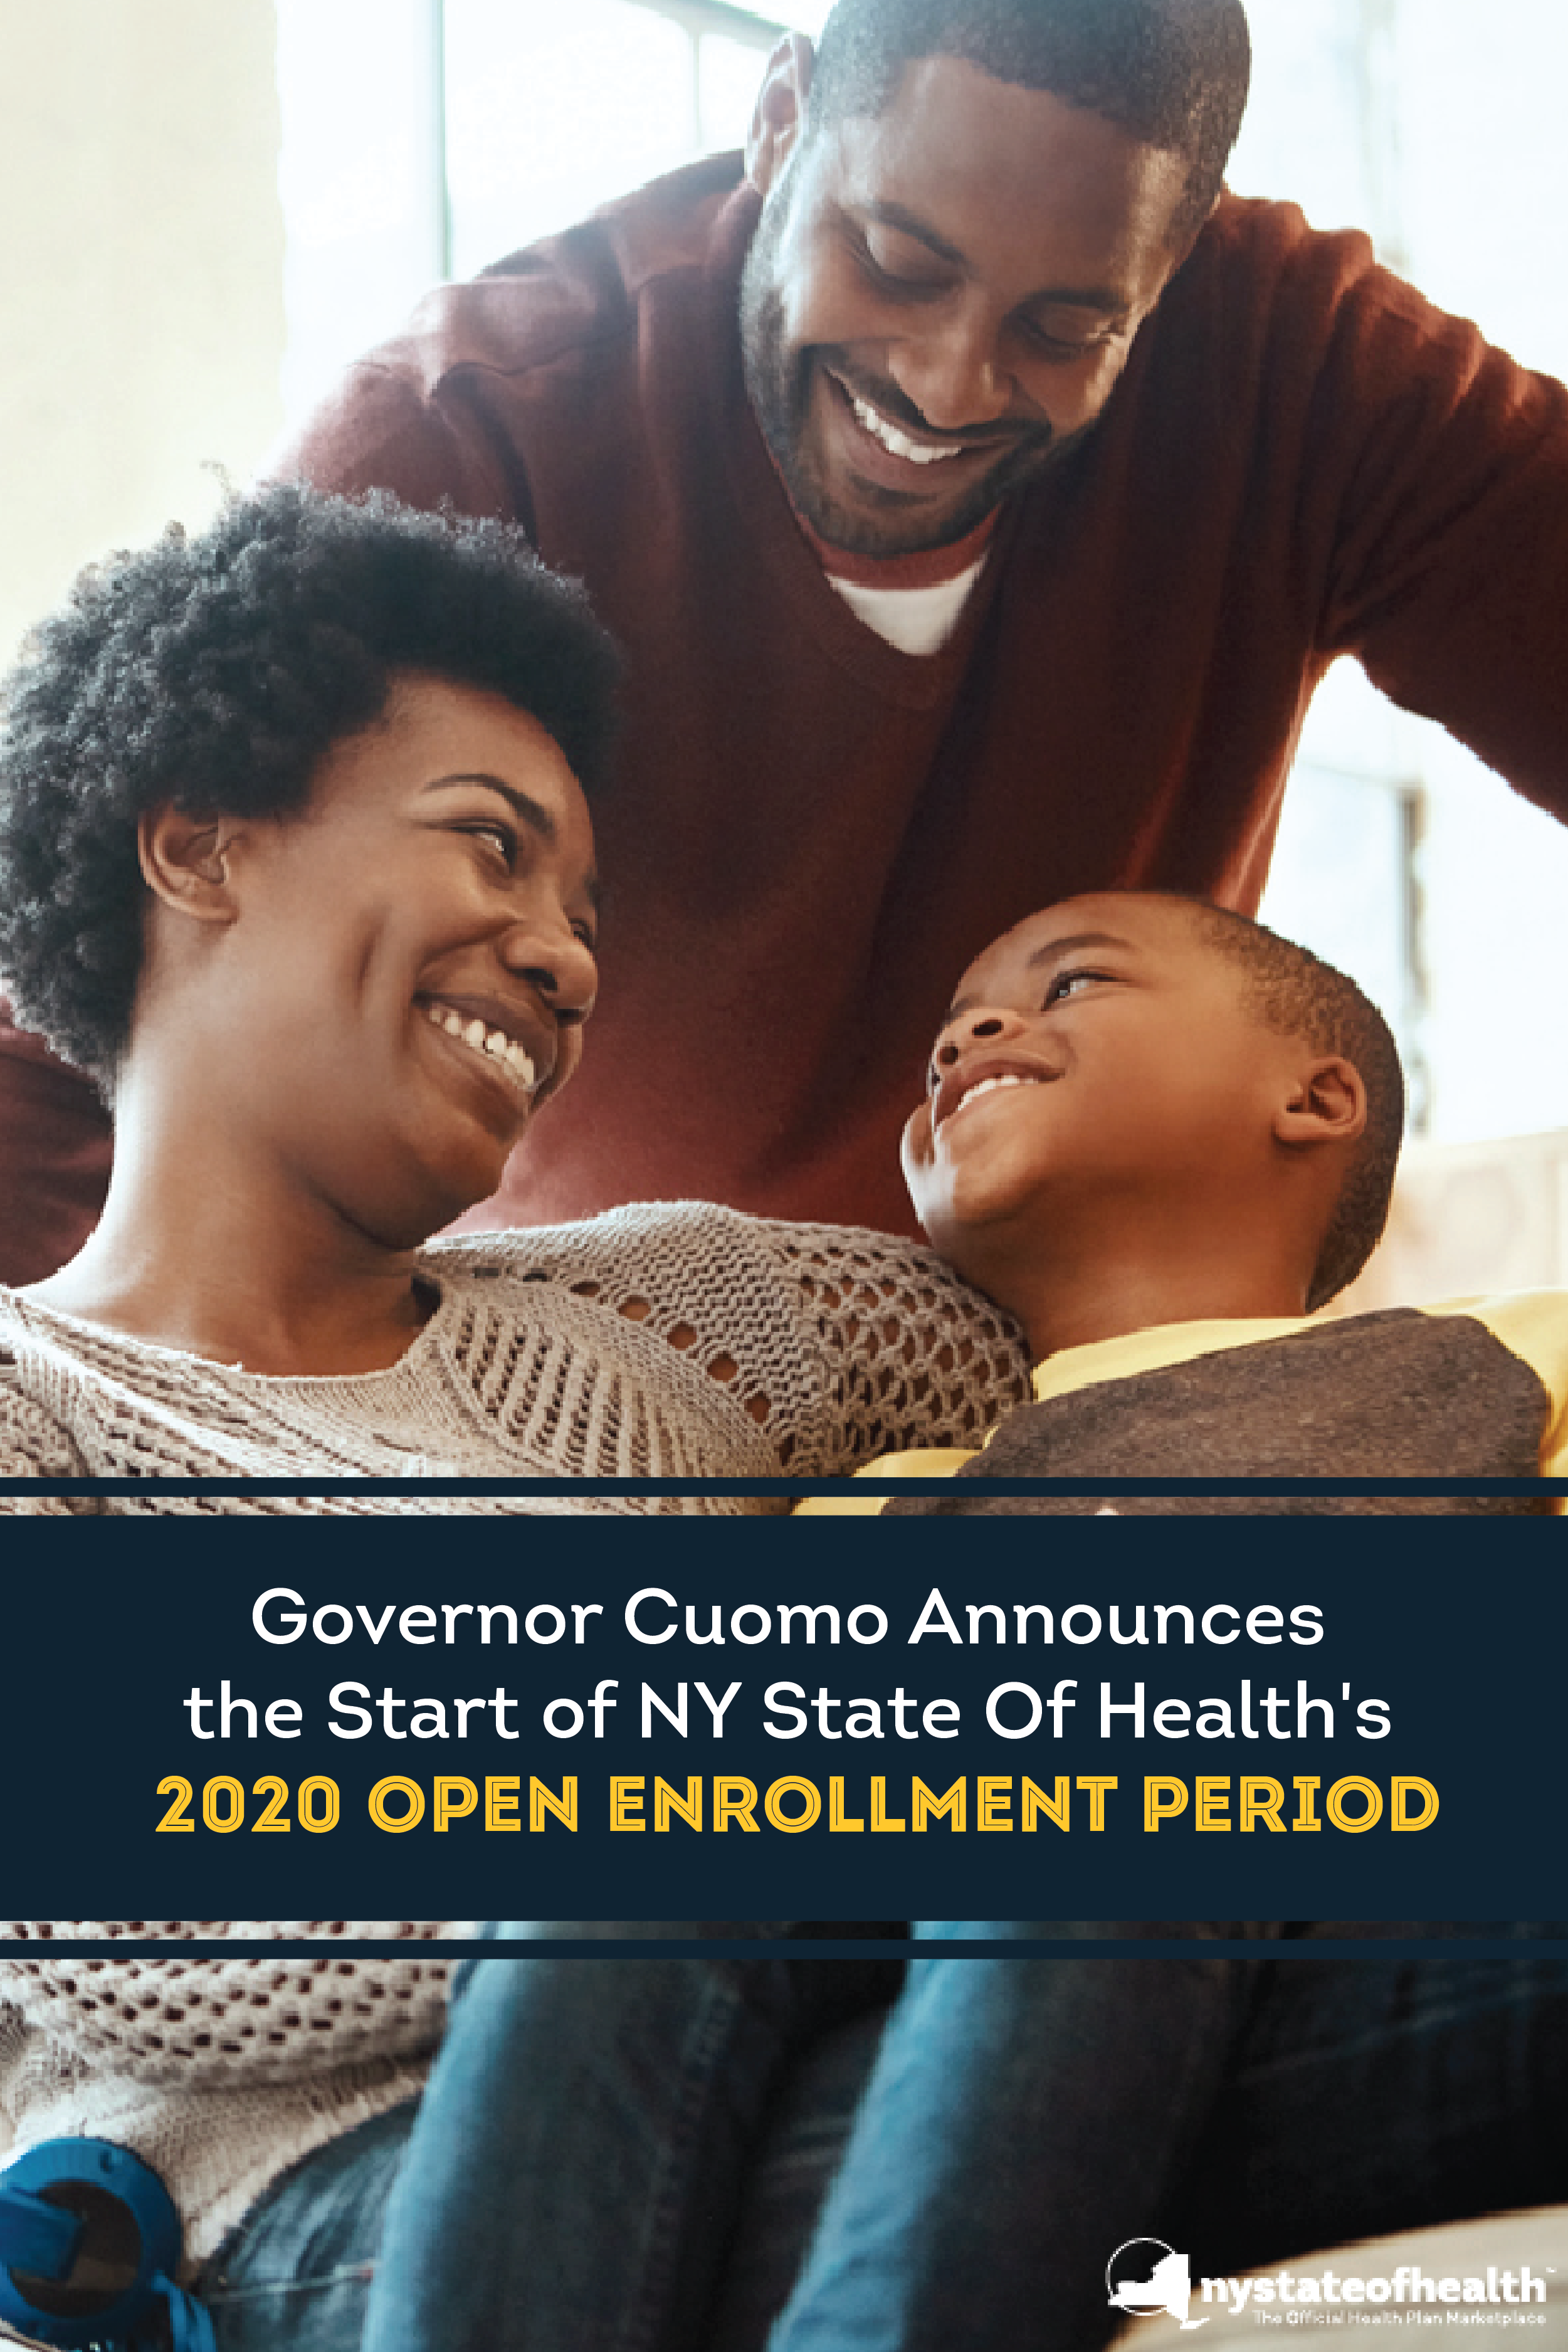 Terrific Pictures Most Current Cost Free Most Up To Date Photos Governor Cuomo Announces The Start Concepts In 2020 Health 2020 Best Health Insurance Affordable Healthcare